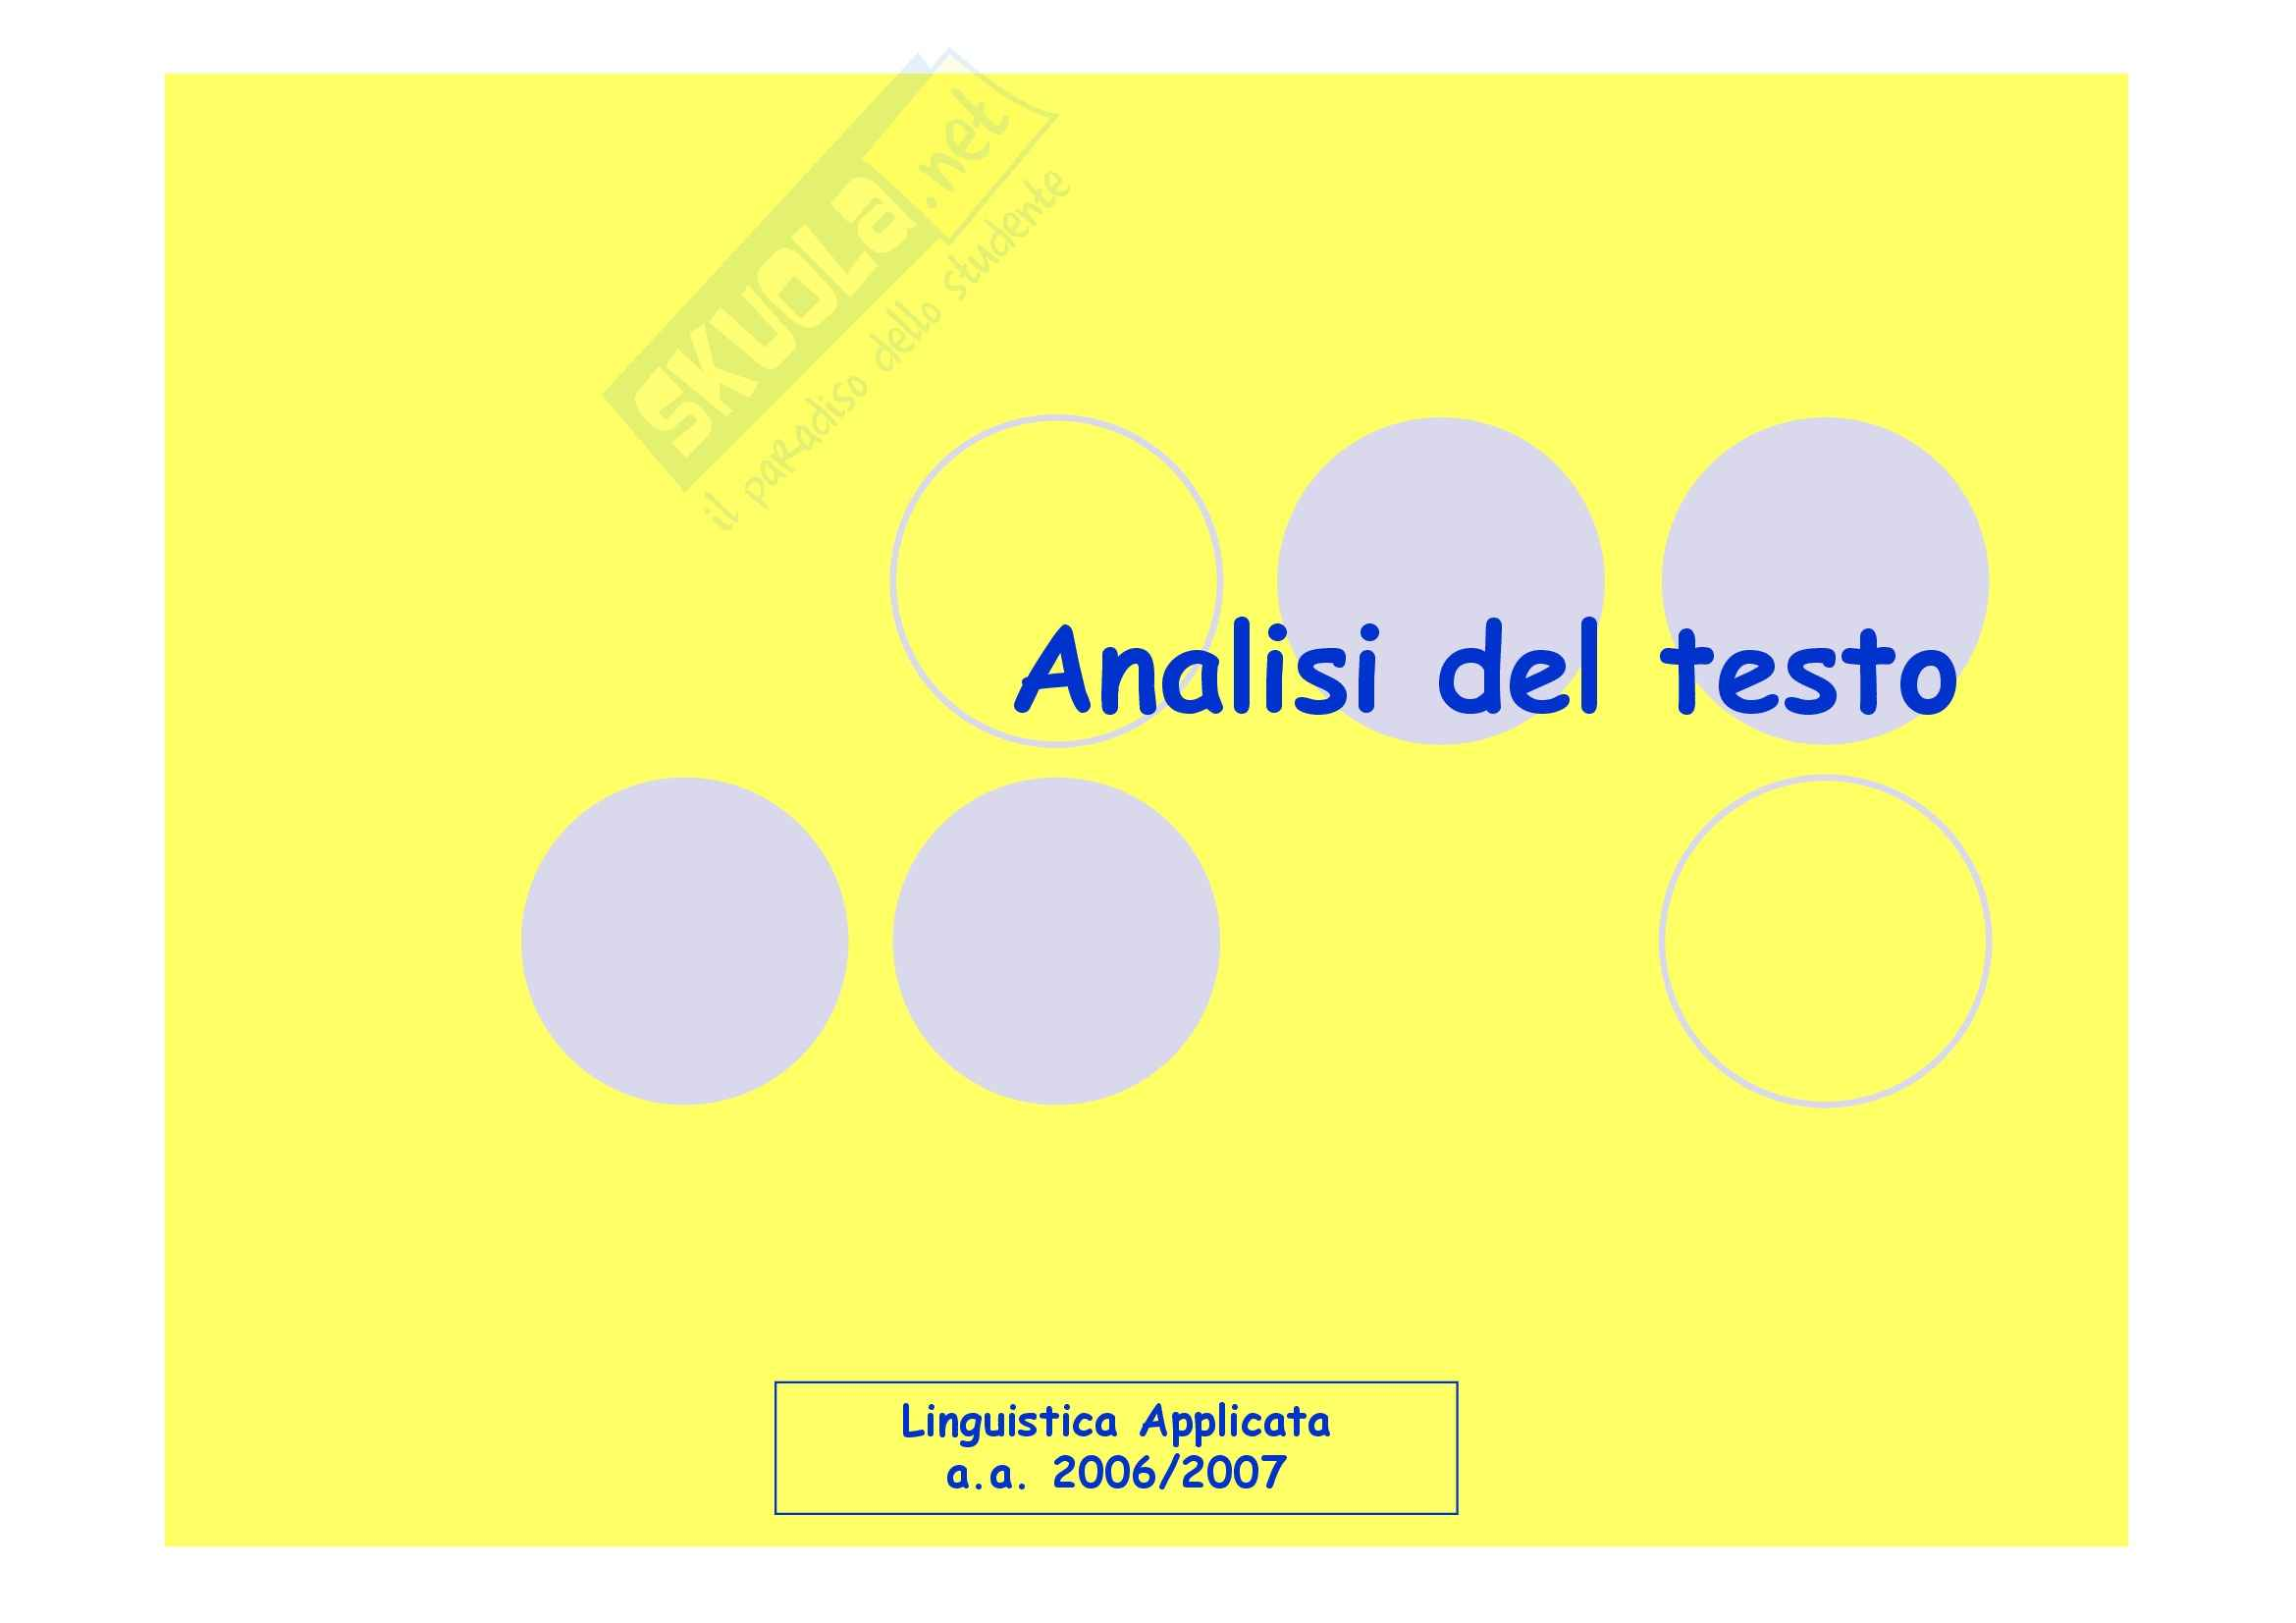 Linguistica applicata - l'analisi del testo